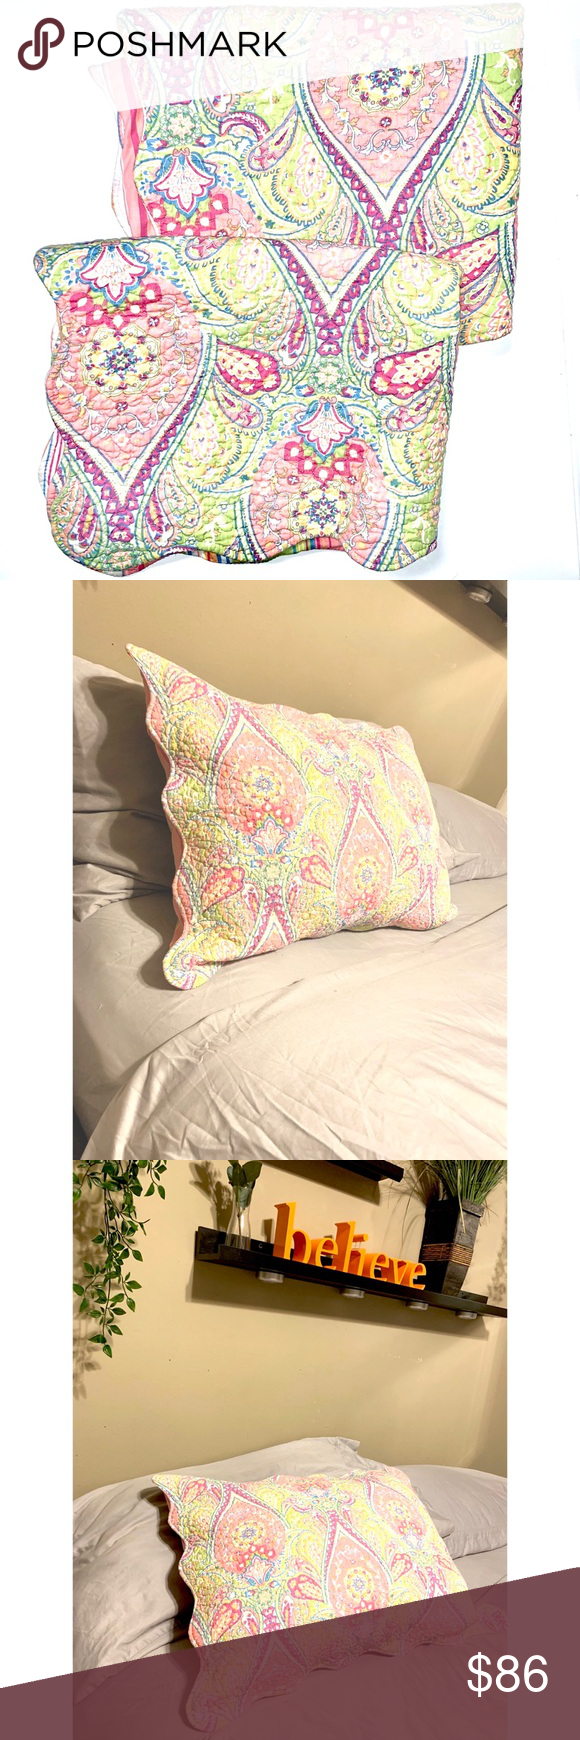 Two Quilted Pillow Shams Super Cute Paisley pillow shams beautiful for a girls r...  Two Quilted Pillow Shams Super Cute Paisley pillow shams beautiful for a girls r…#beautiful #cute #Beautiful #Cute #Girls #paisley #Pillow #Quilted #Shams #Super